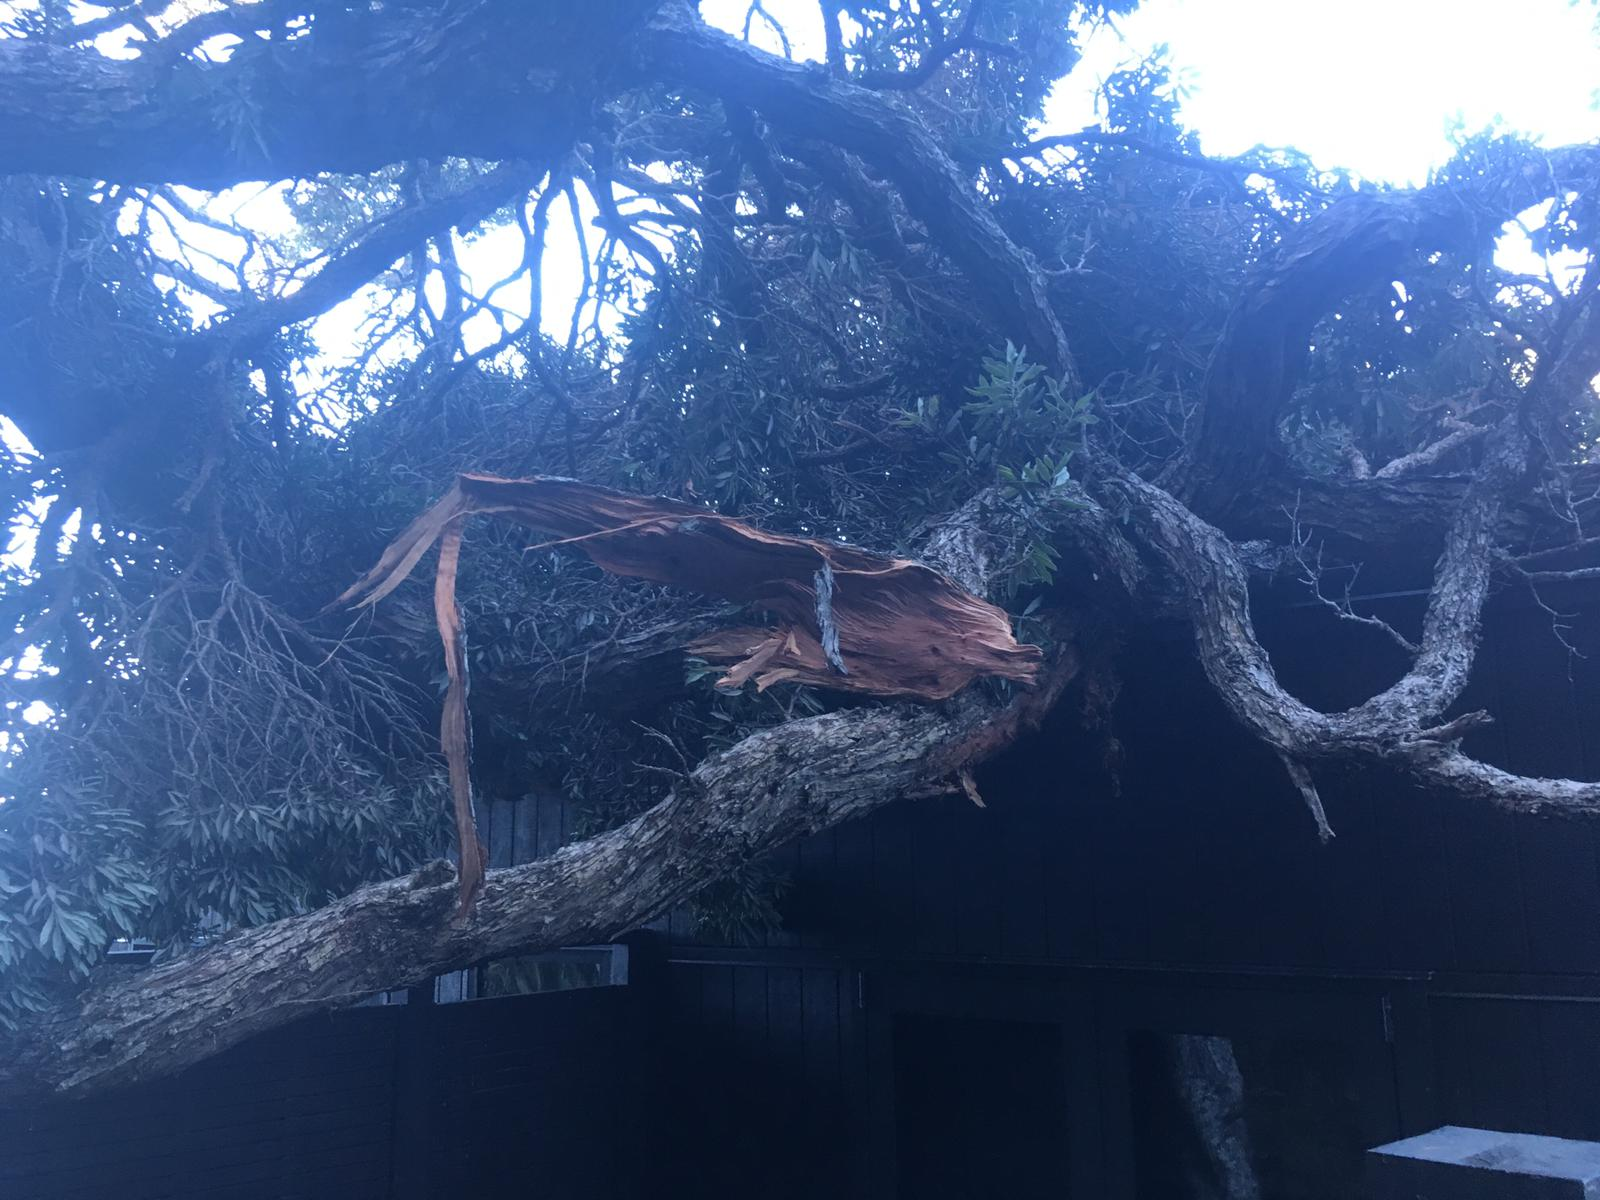 A mess of tangled and shattered limbs on the roof